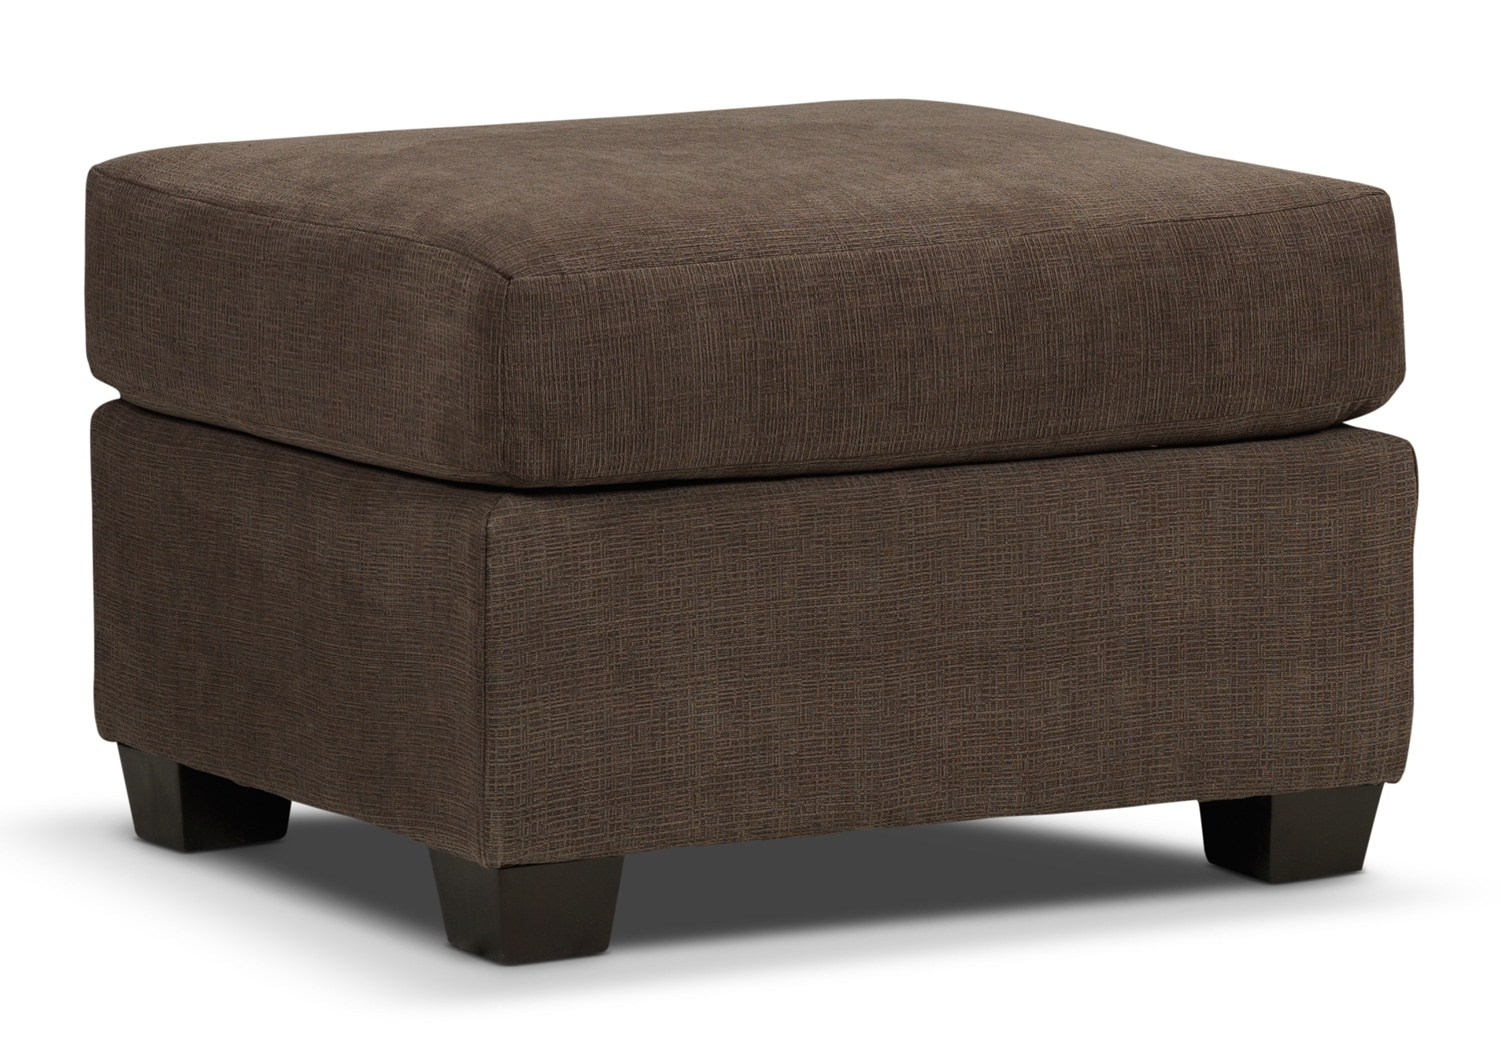 Fava Ottoman - Light Brown